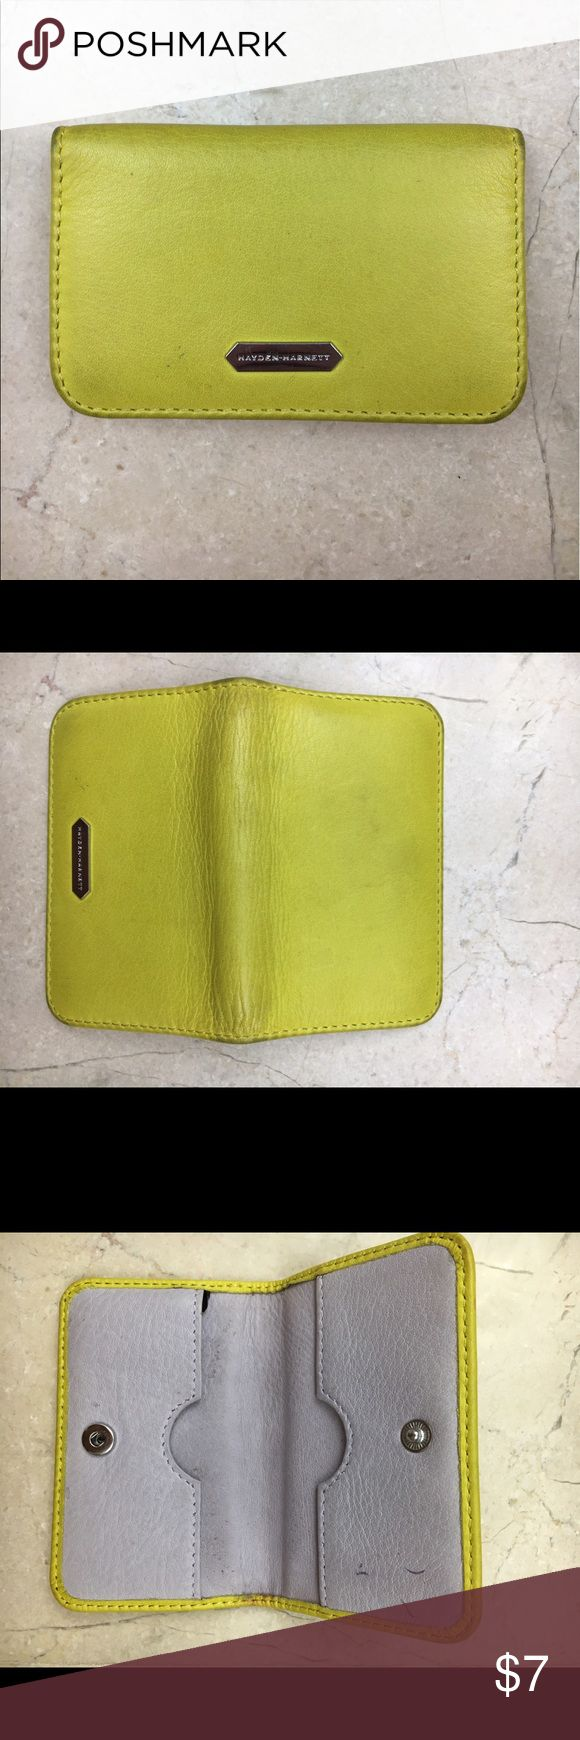 Hayden Harnett leather card case Snap closure.  2 sided card case.  Signs of wear as shown; reflected in price.  Lemon color Hayden Harnett Bags Wallets